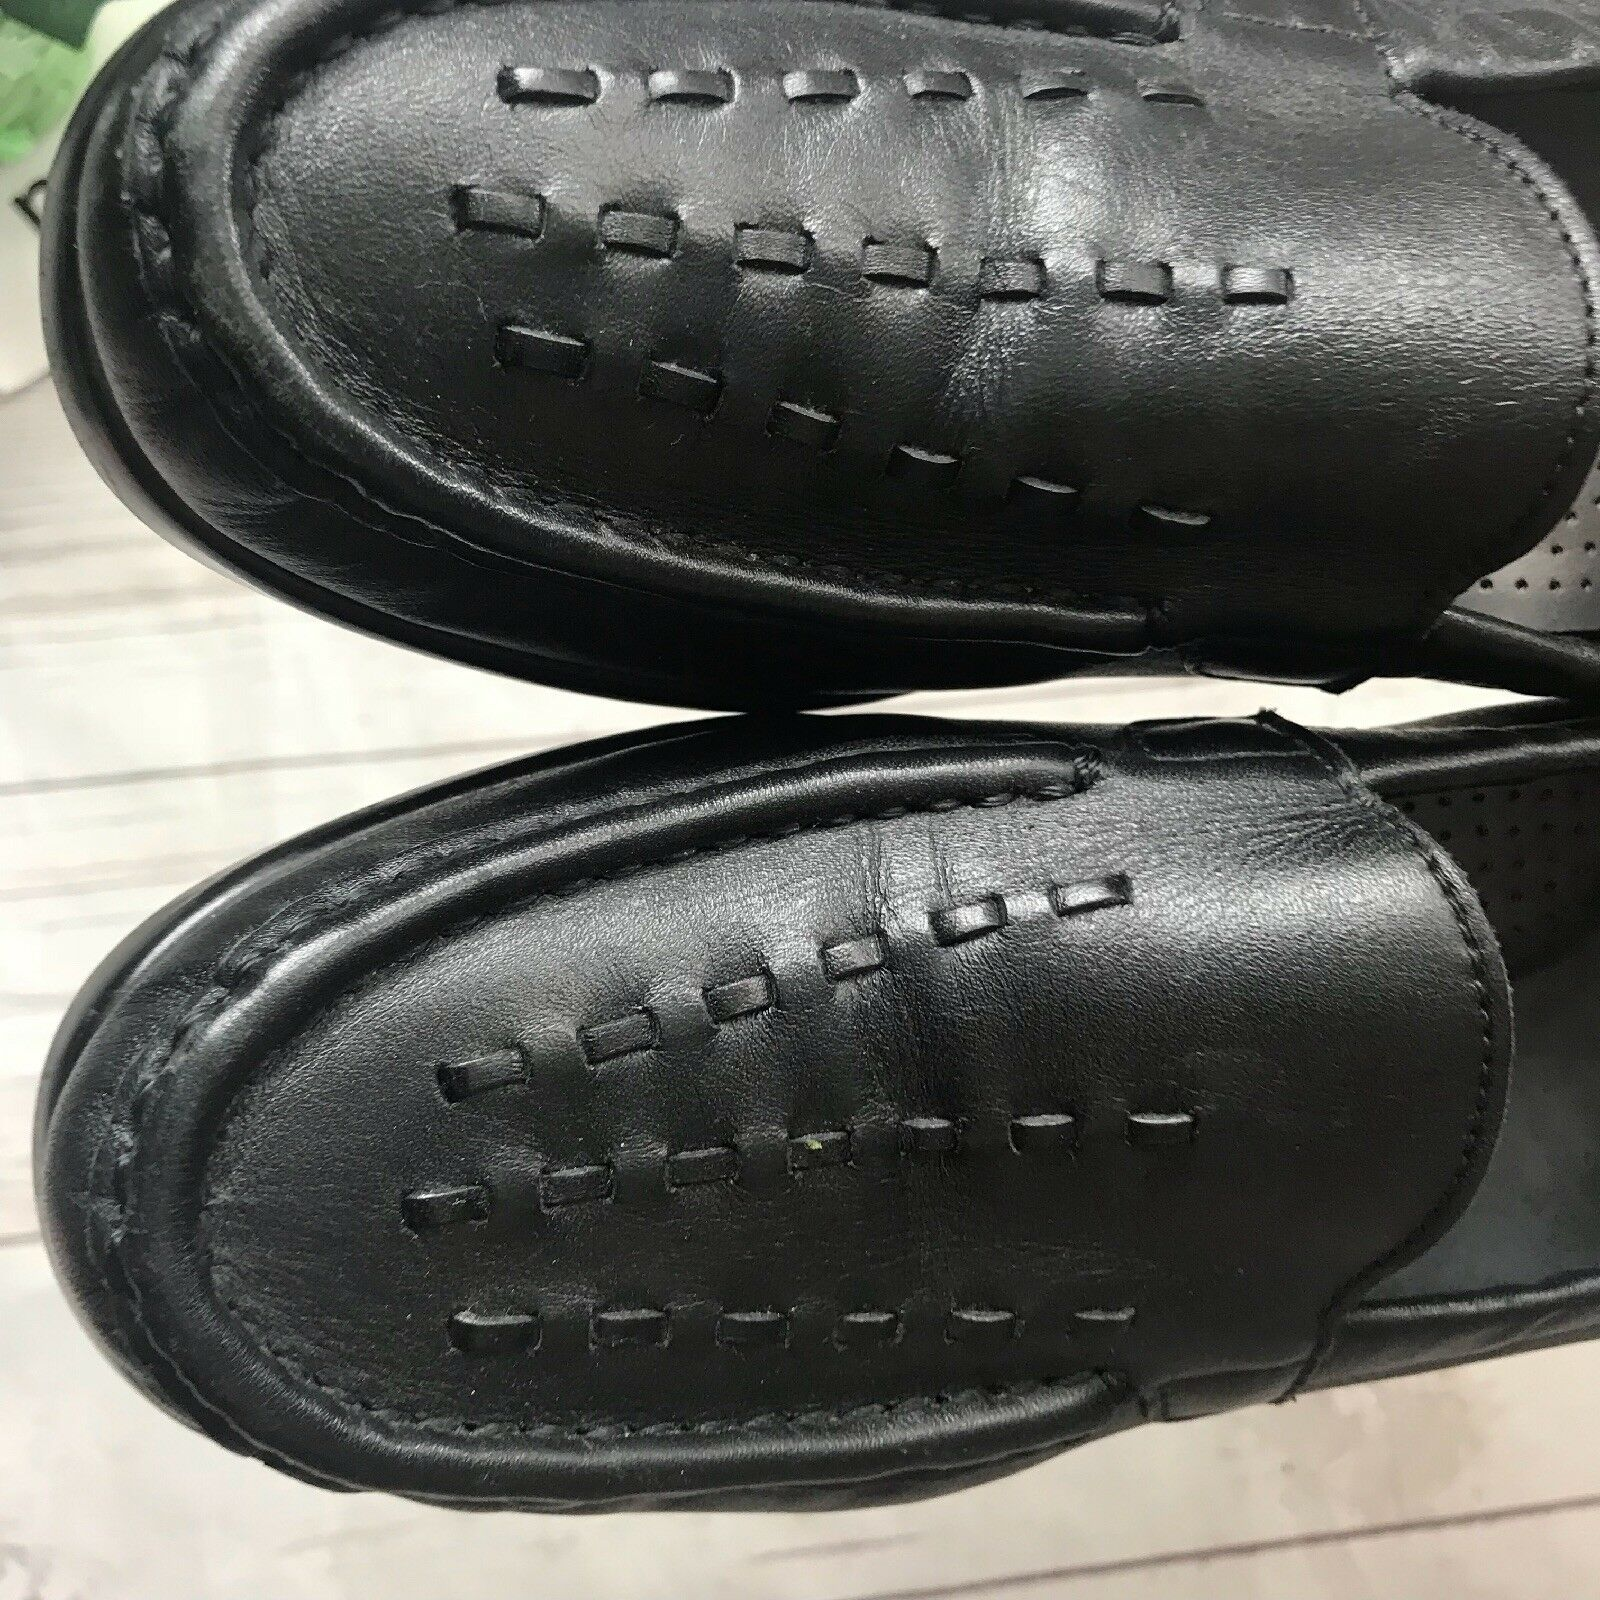 SAS Tripad Women Comfort Size Loafer 8 S Shoes Penny Loafer Size Slip On Leather Black Woven b651ed